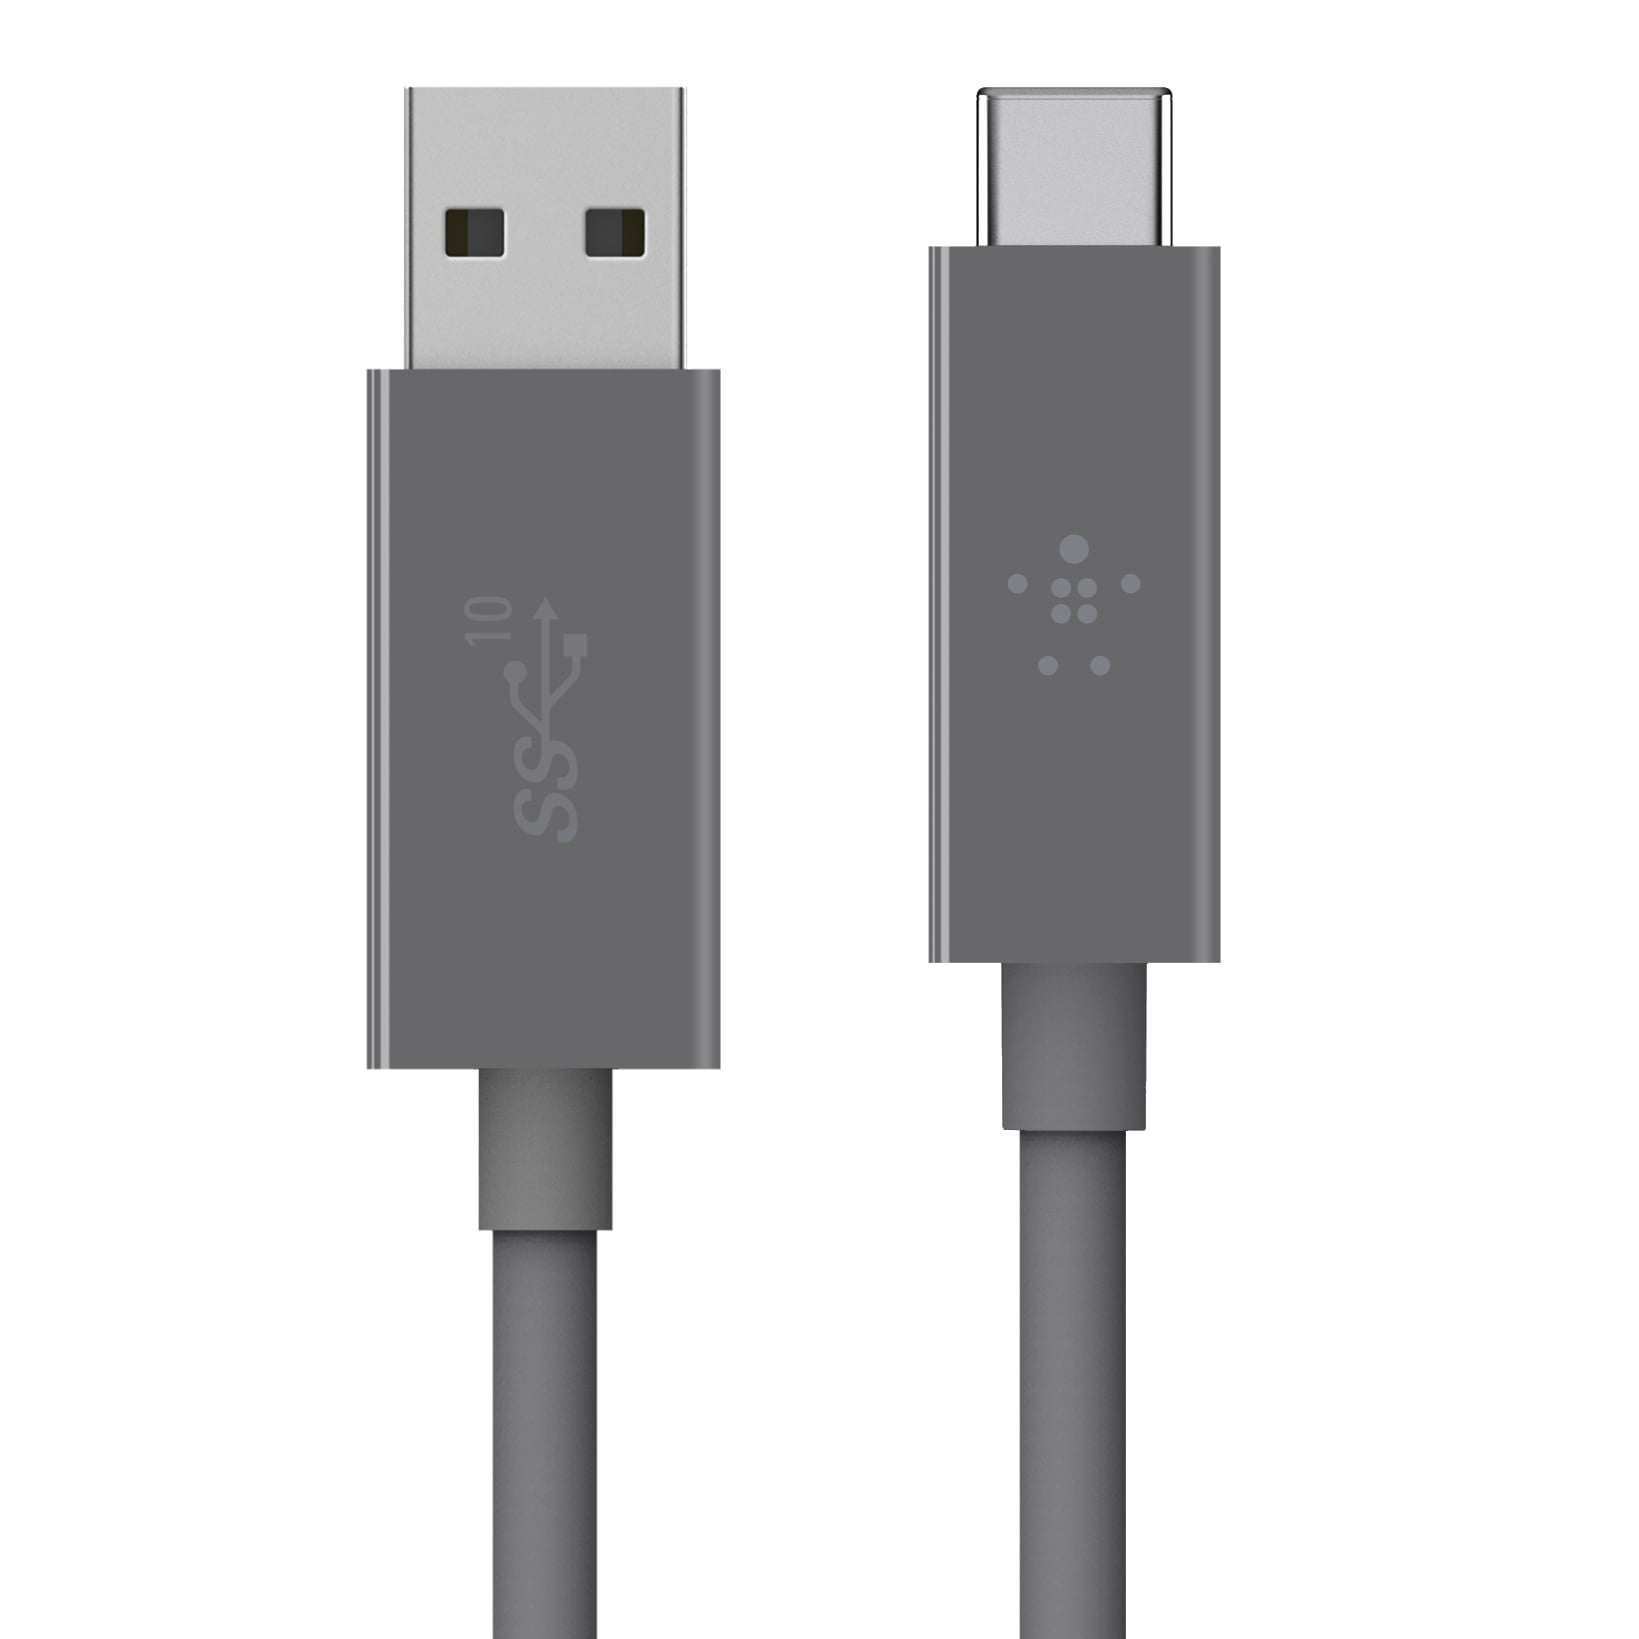 Belkin 3.1 USB-C to USB-A Cable, 1M, Gray